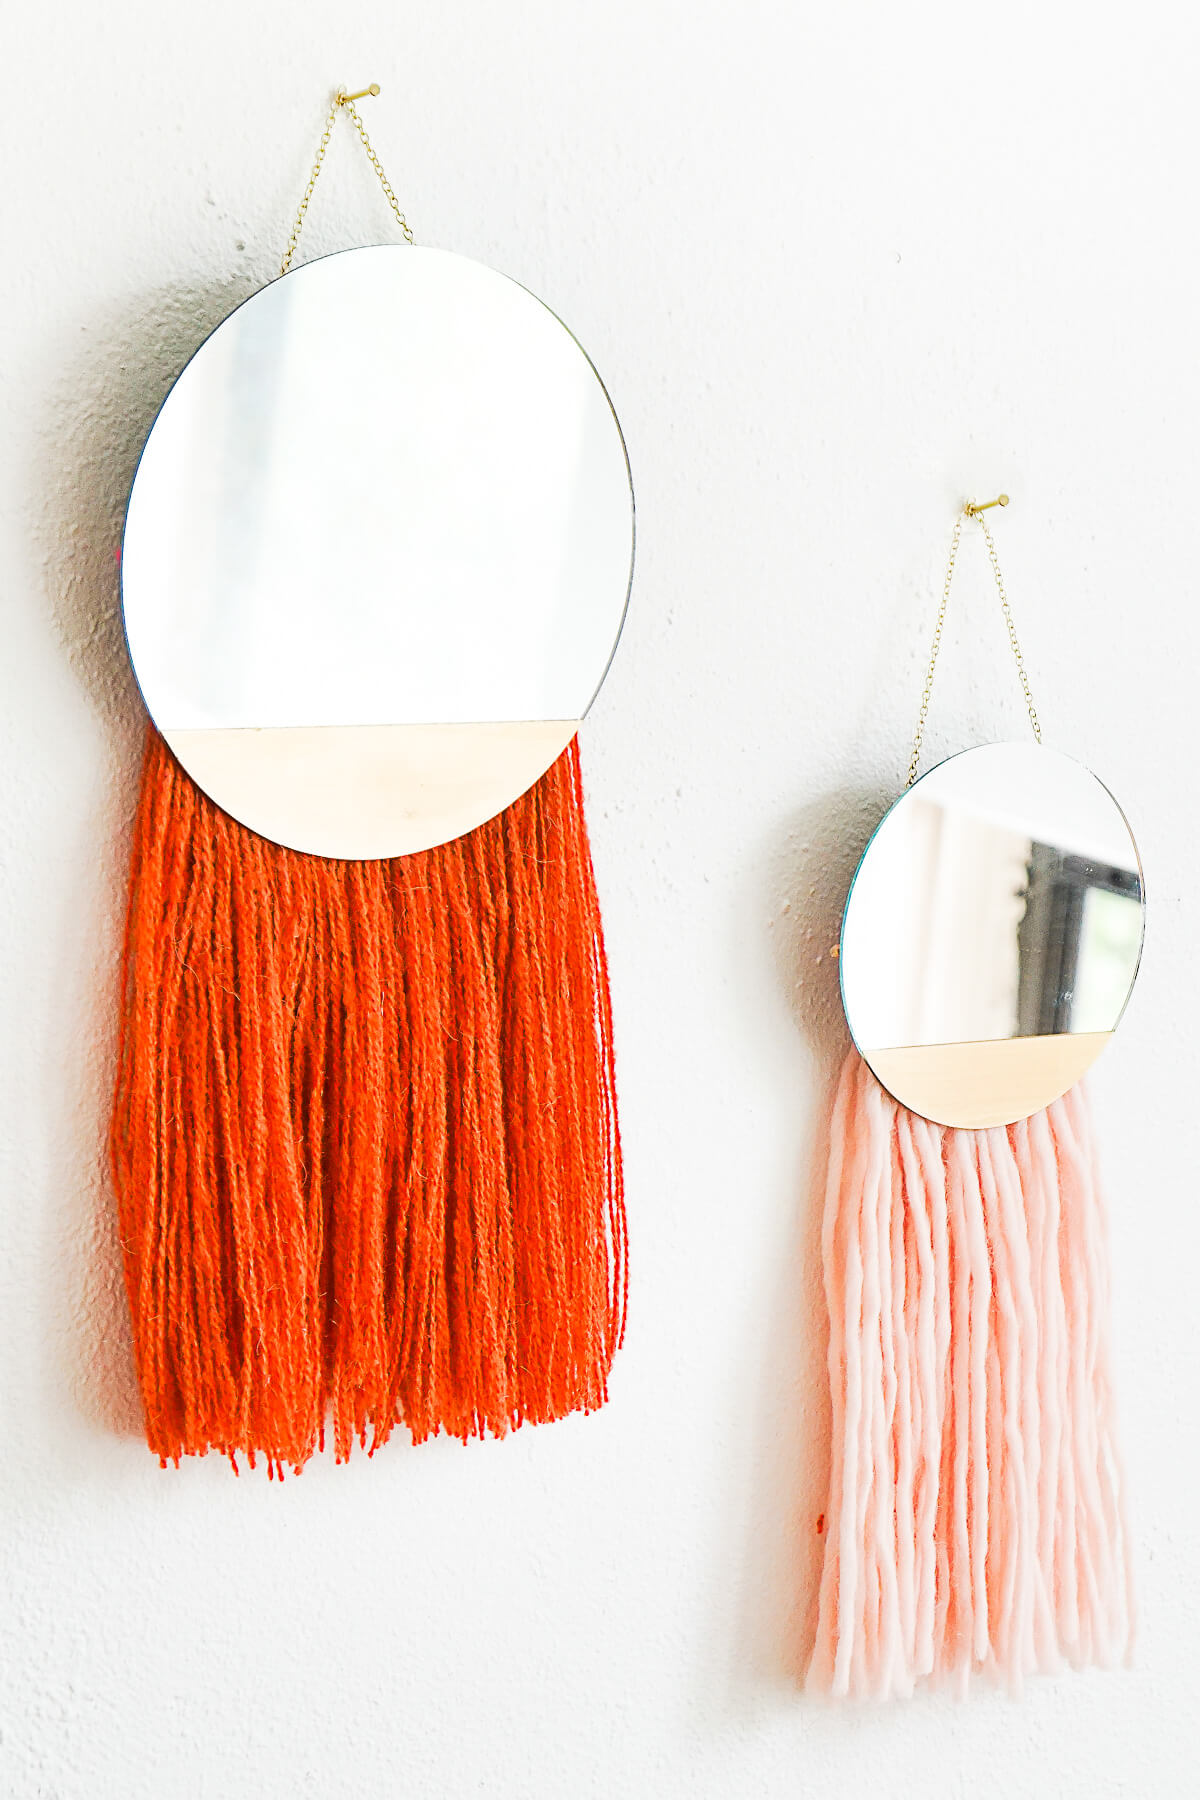 Mirror and String Wall Décor Tassels